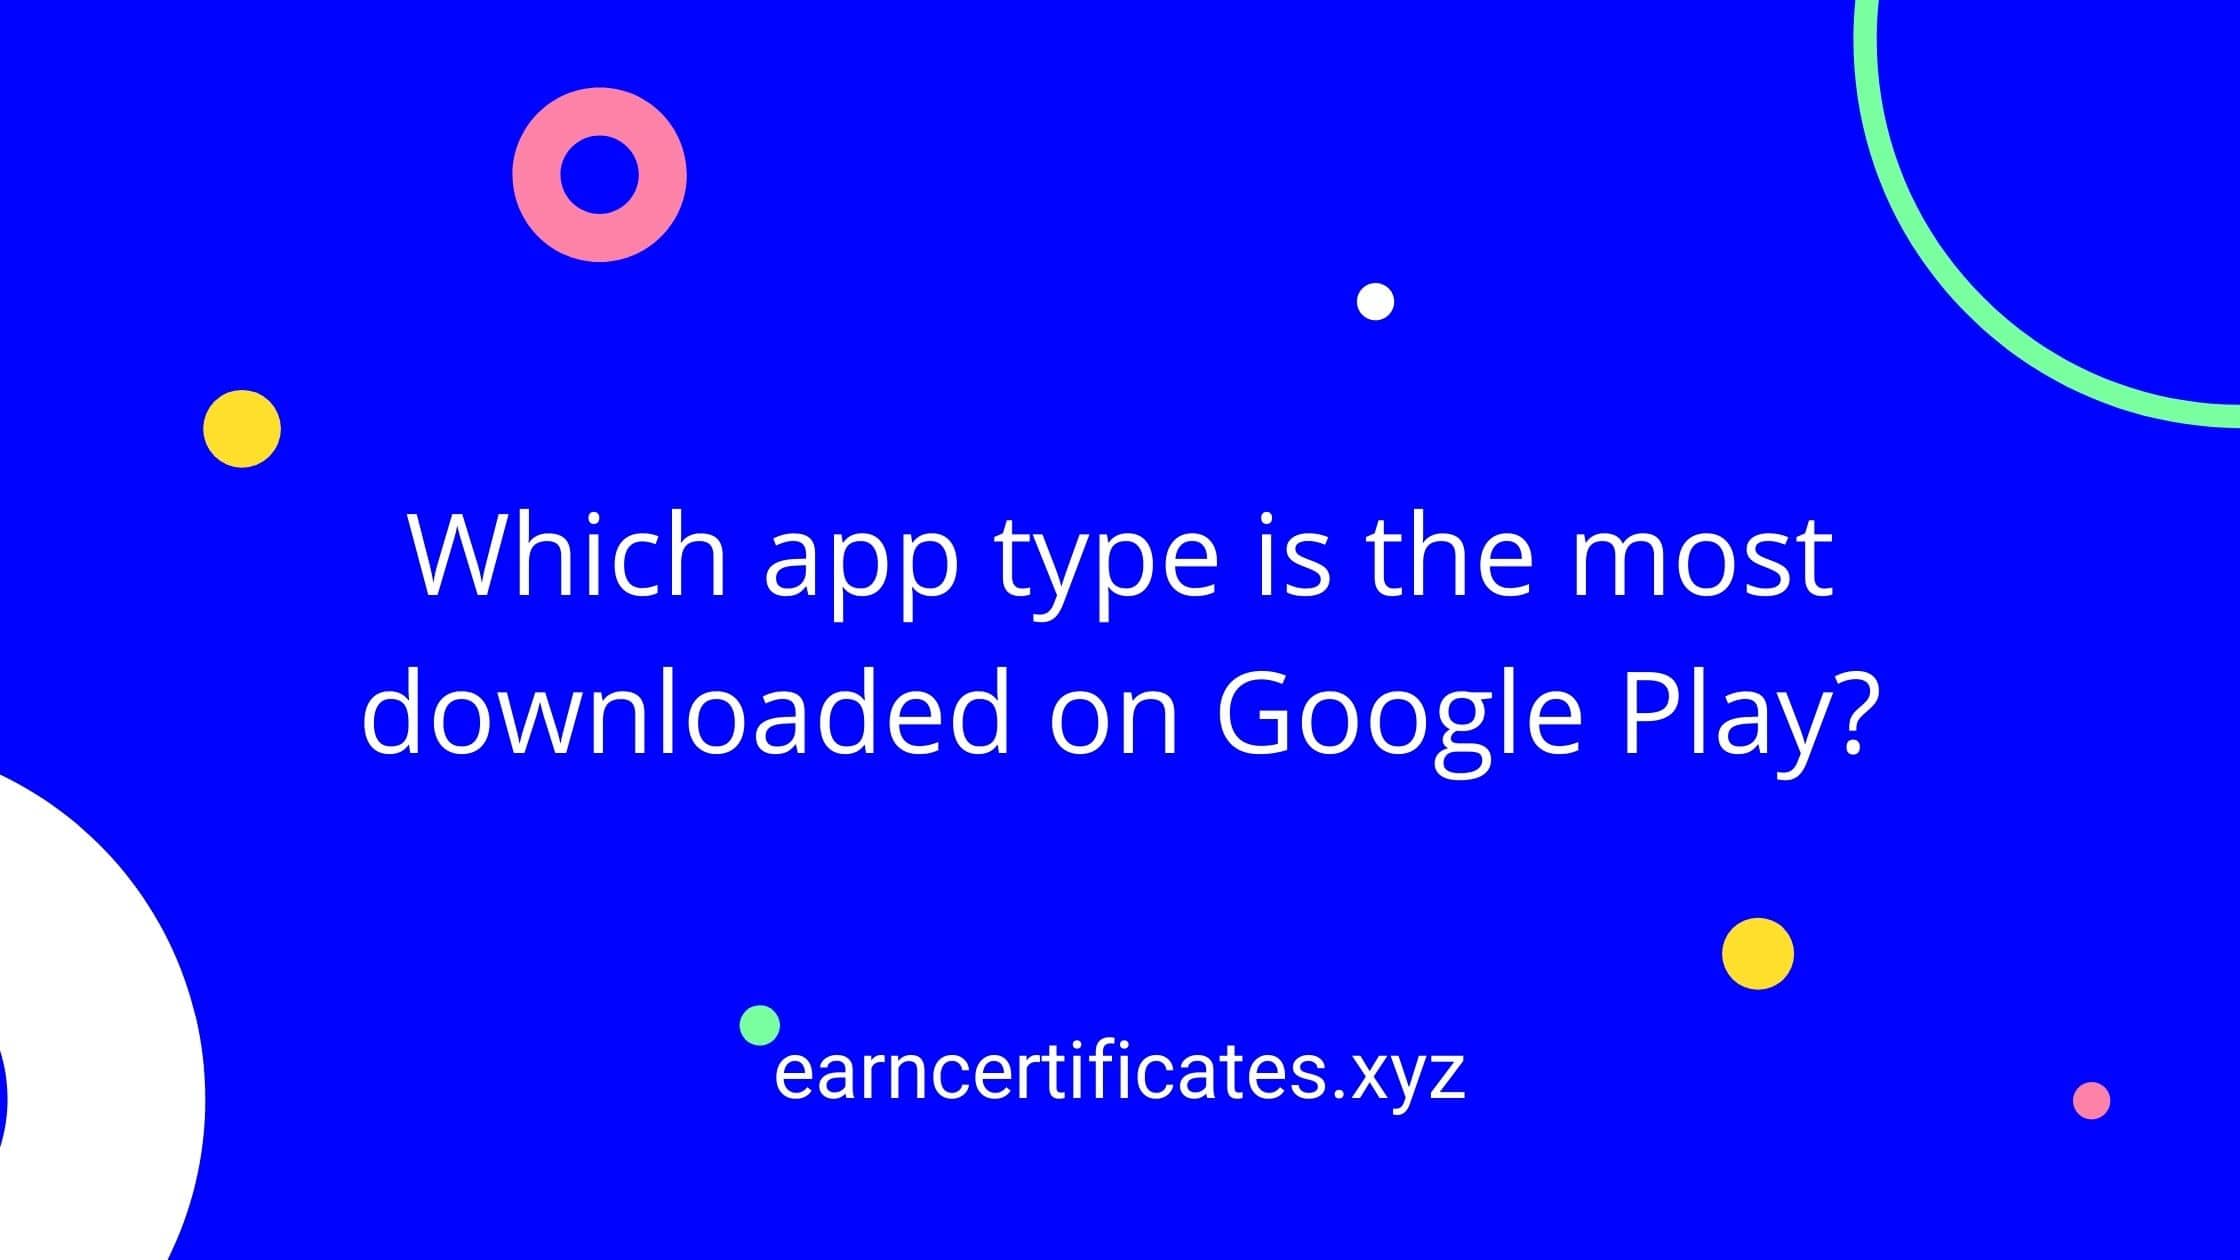 Which app type is the most downloaded on Google Play?